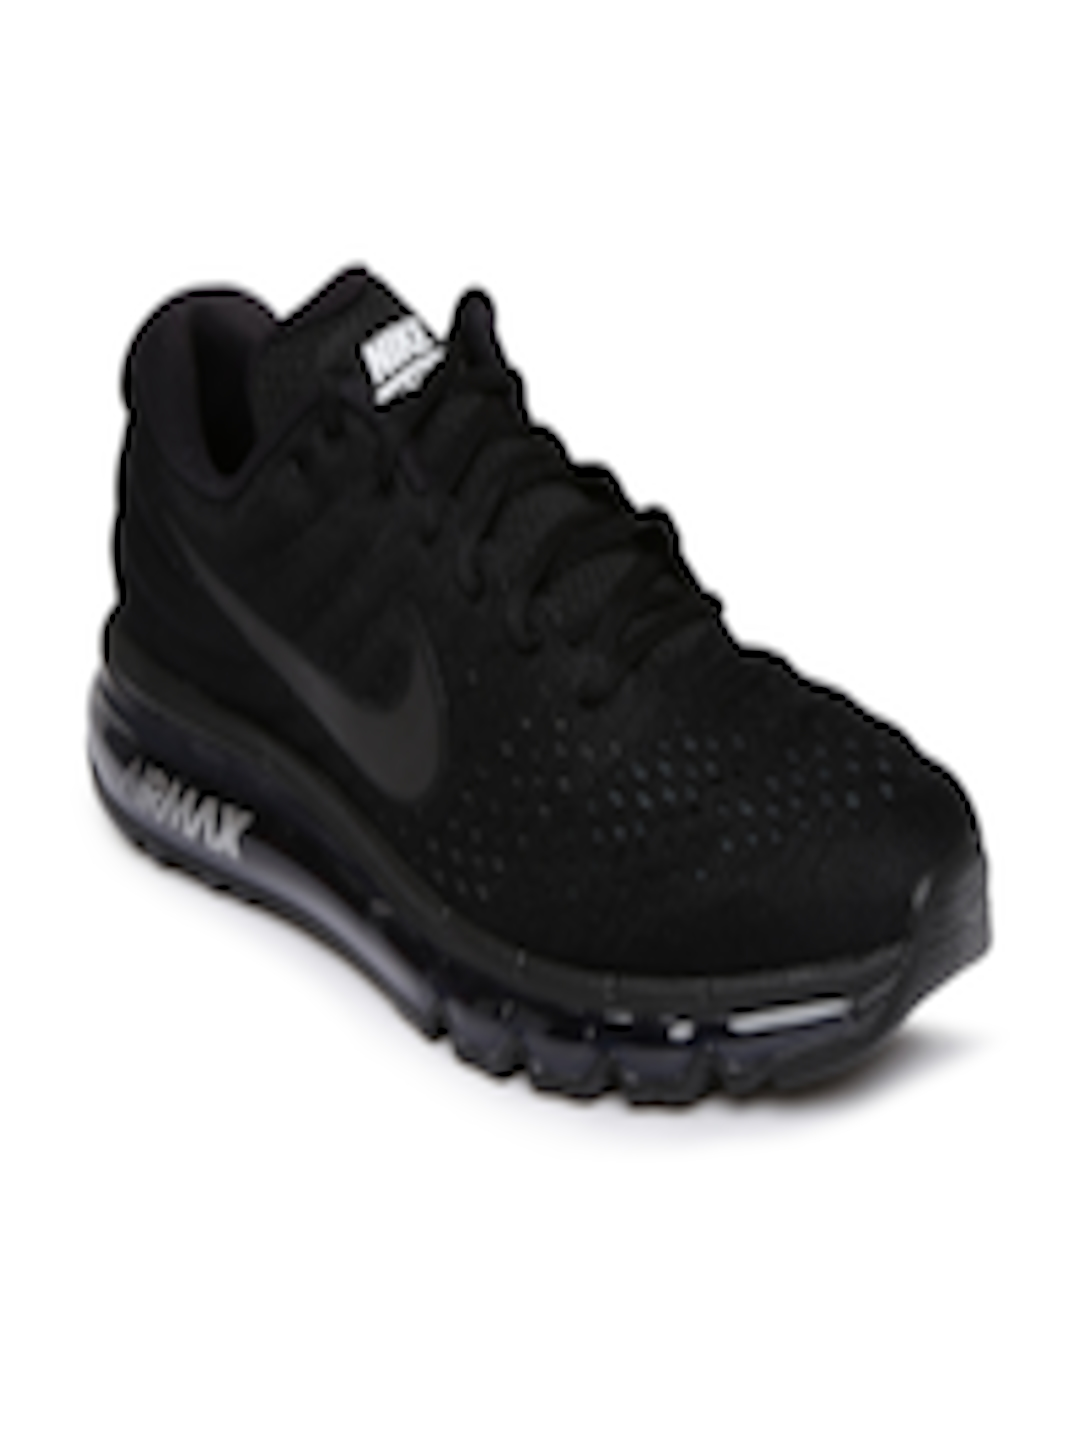 buy online eeac5 2e01f coupon code for nike air max 2017 junior negro kitchen 85869 ...